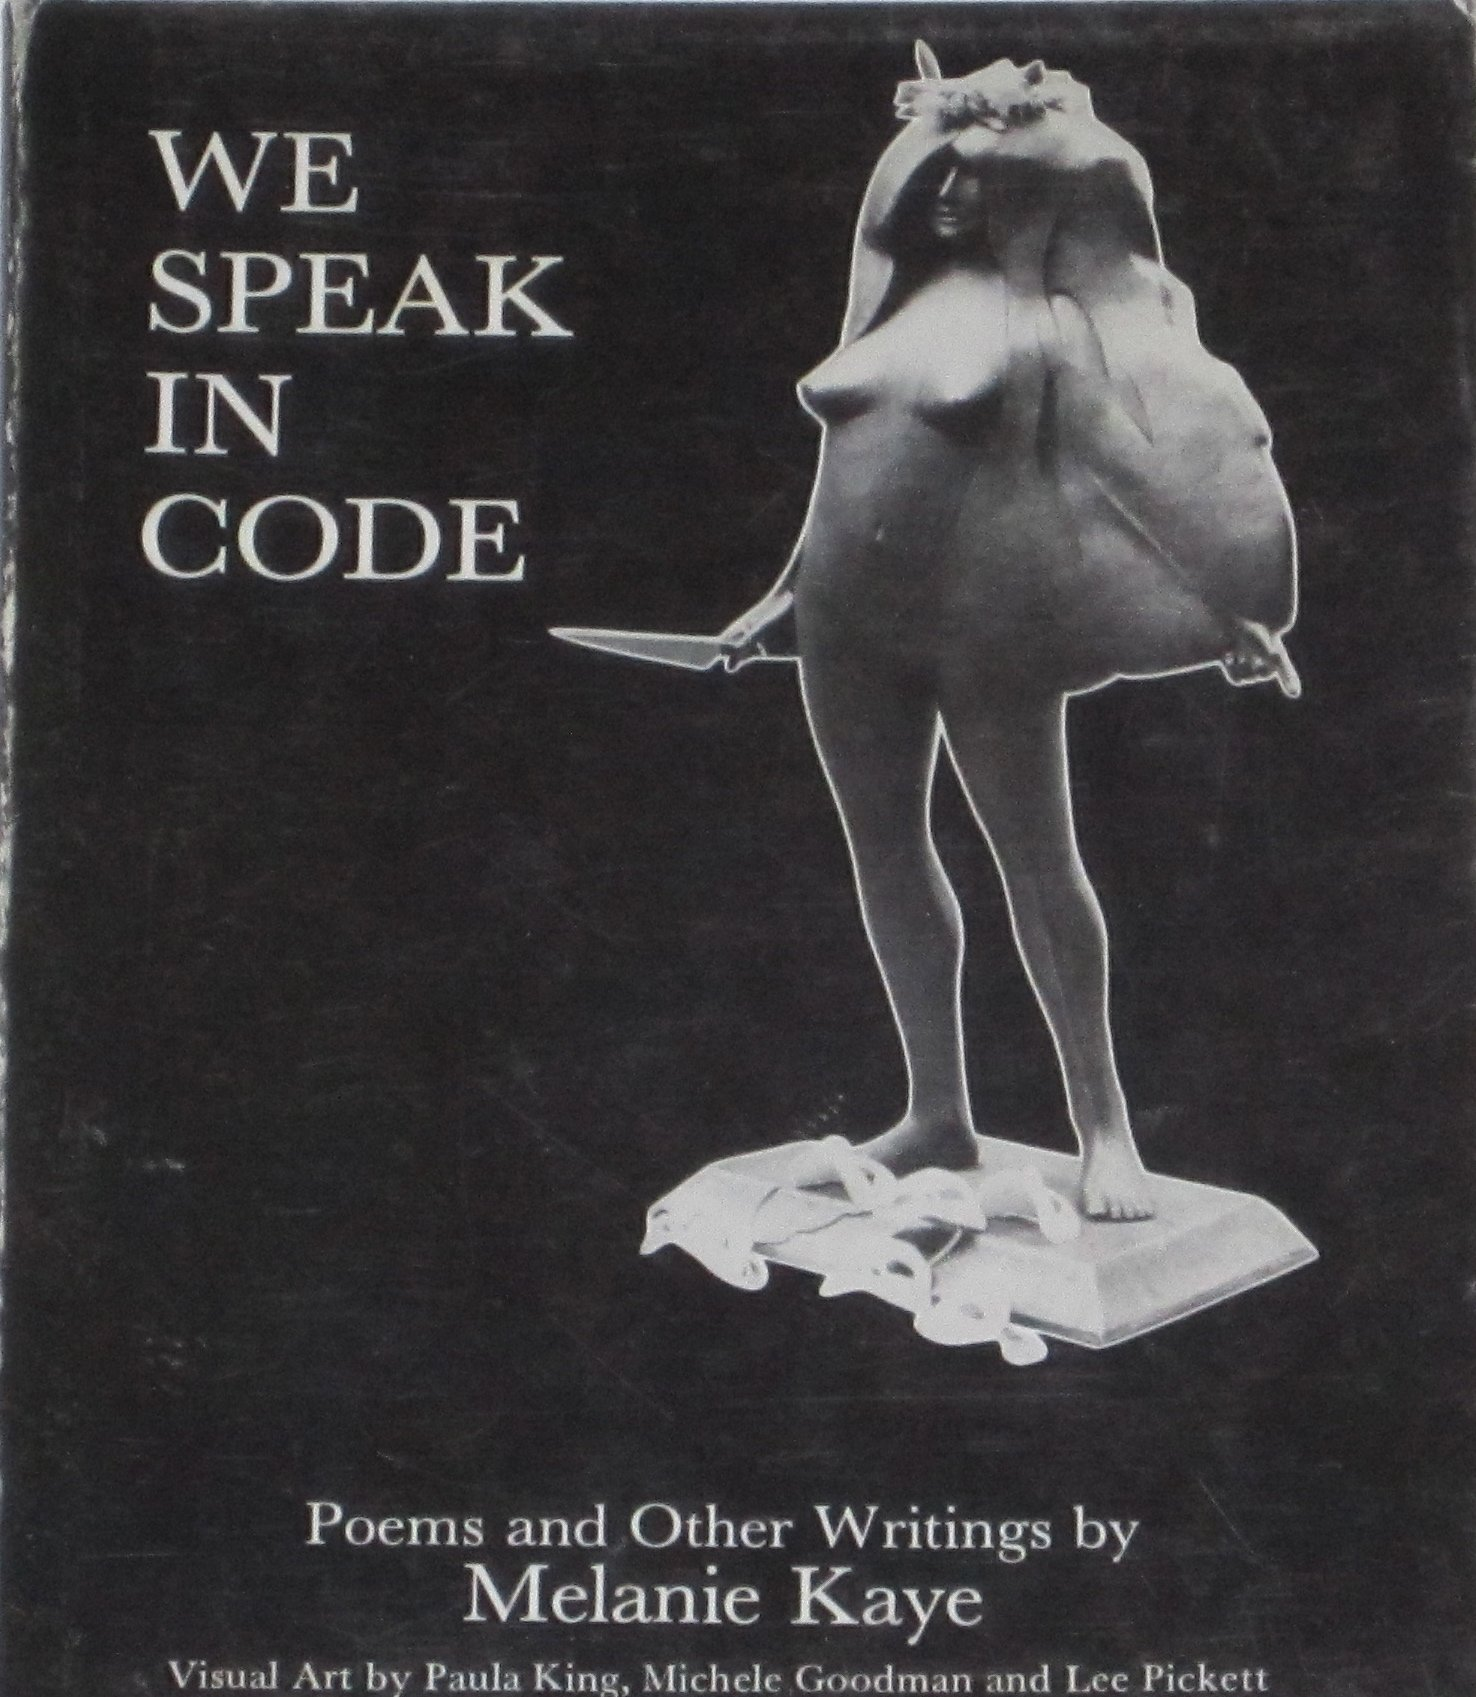 We speak in code: Poems and other writings, Kaye, Melanie